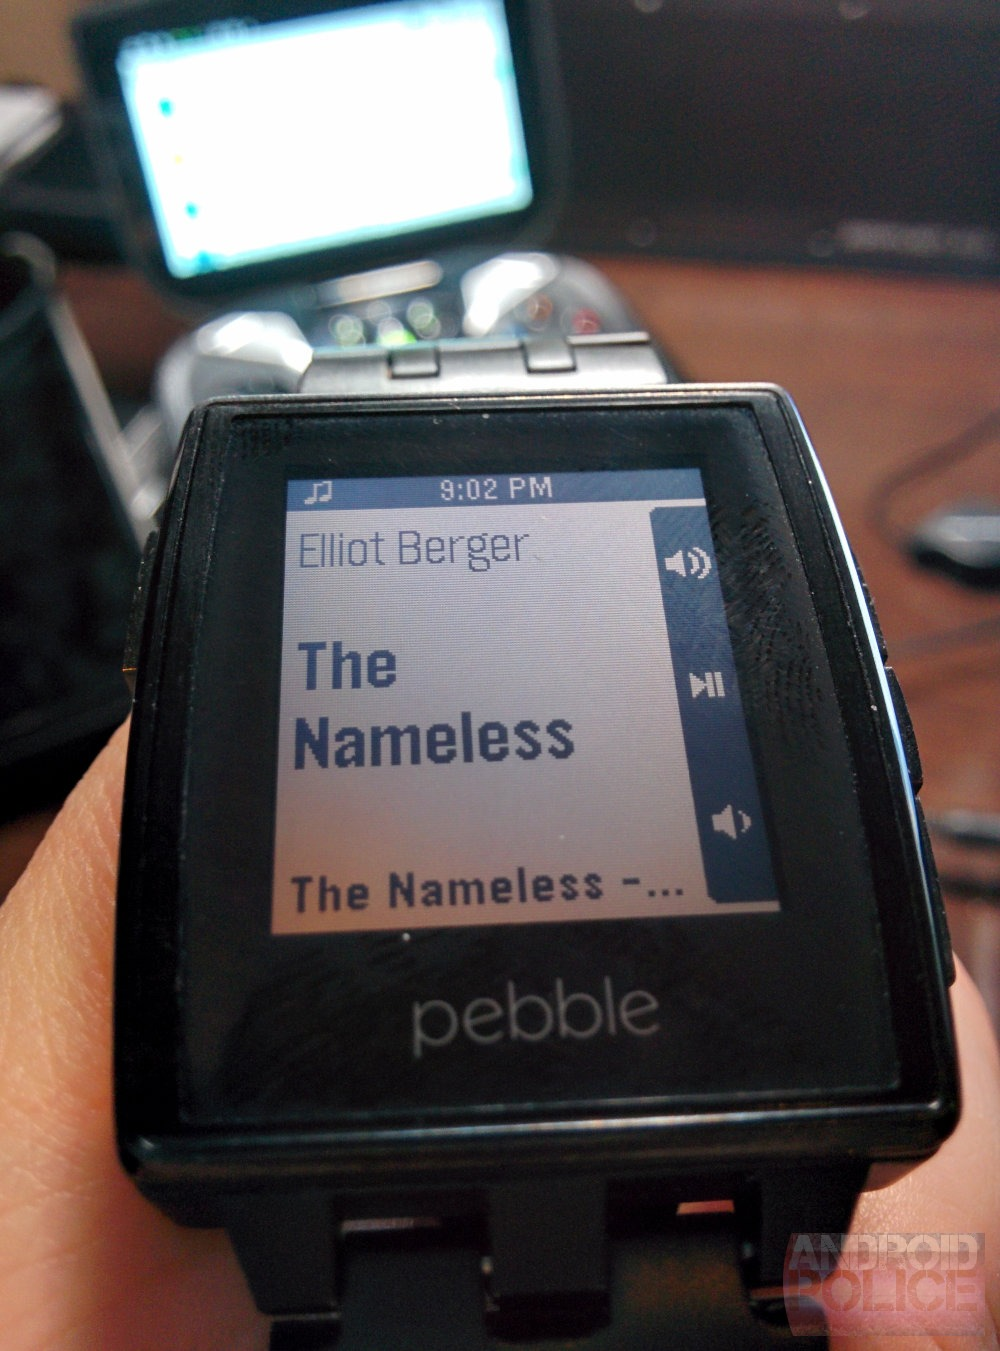 Pebble Smartwatch for iPhone and Android - prowatchstore.com